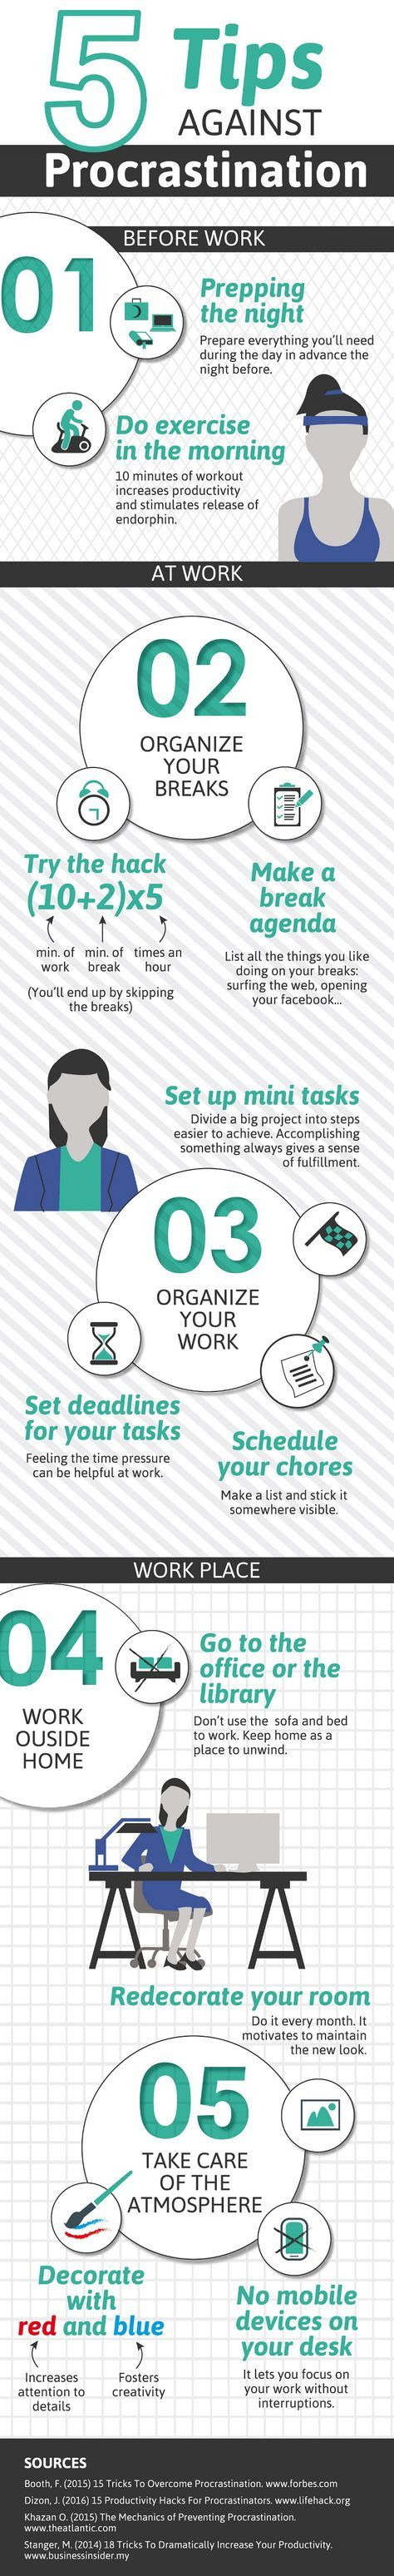 10 Time management Pins you might like - gloriajeanbrown3@gmail.com - Gmail